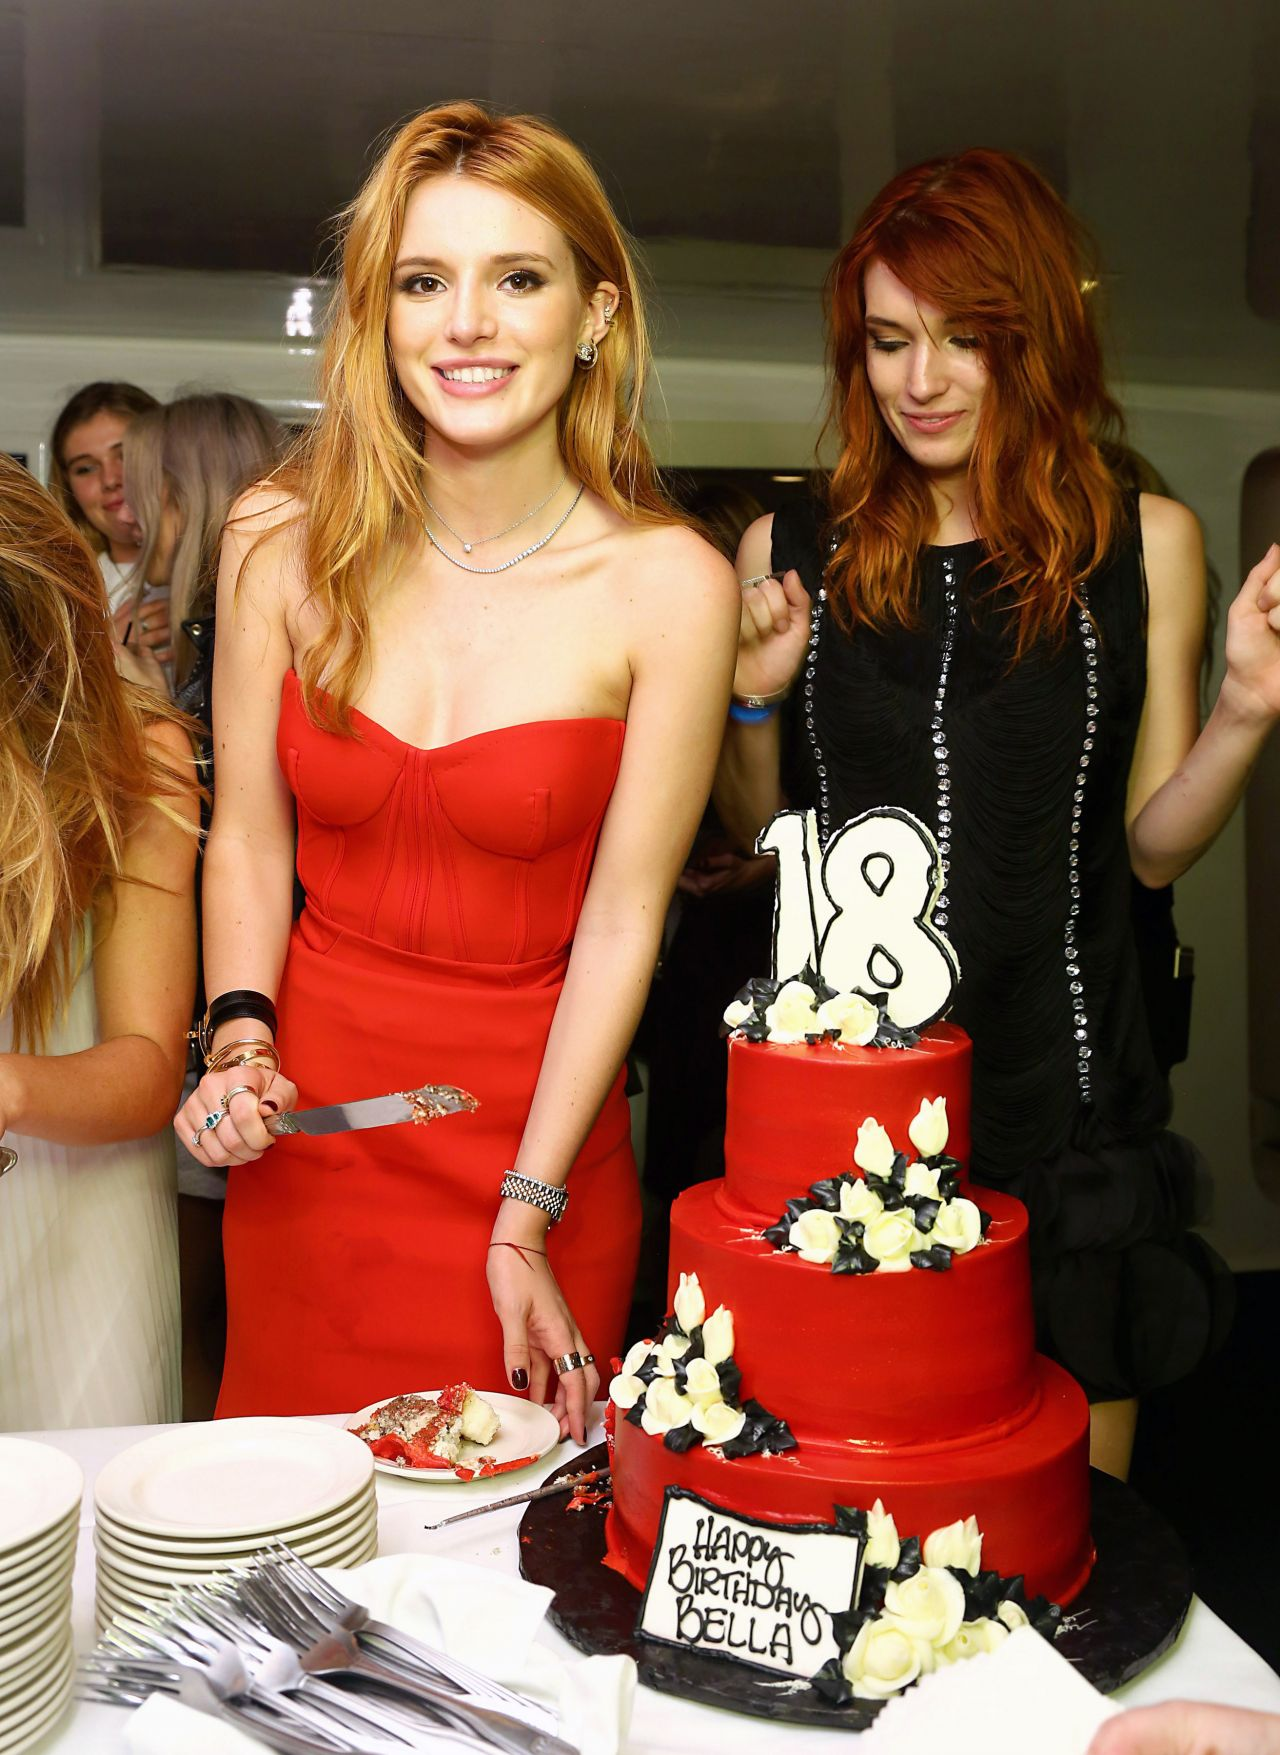 Bella Thorne At Her 18th Birthday Party On A Yacht In